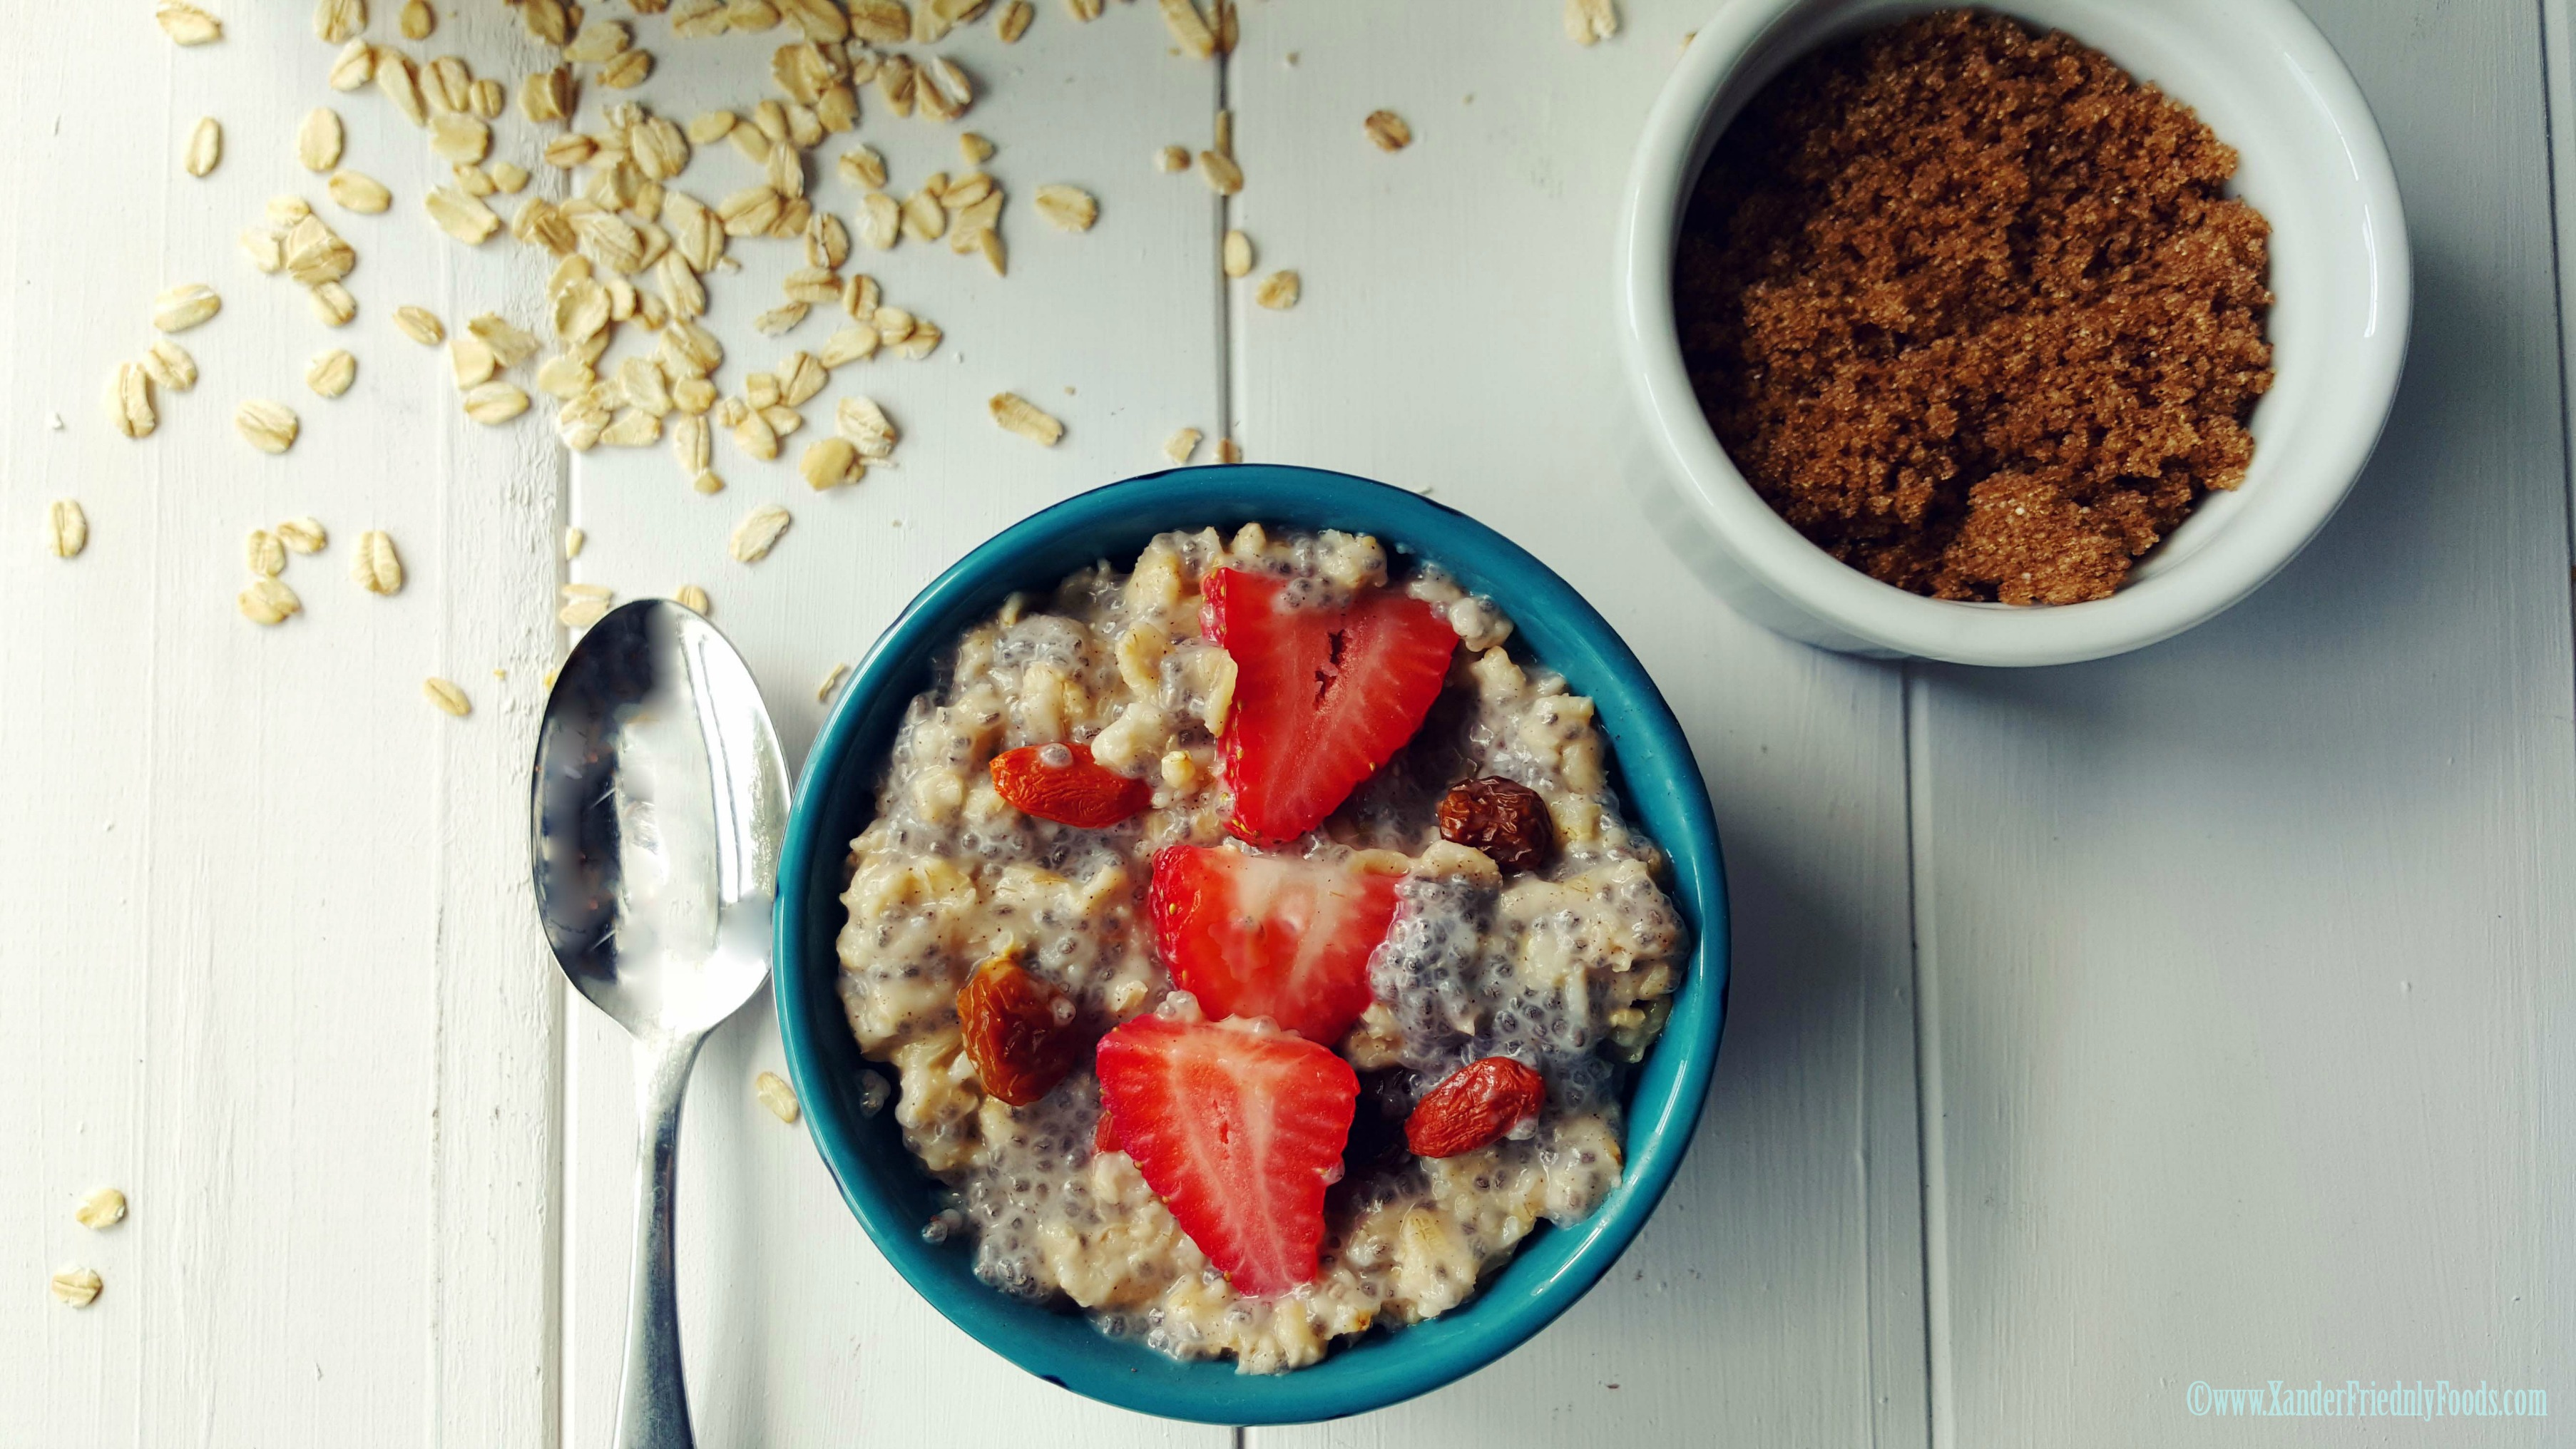 Superfood Oats 4